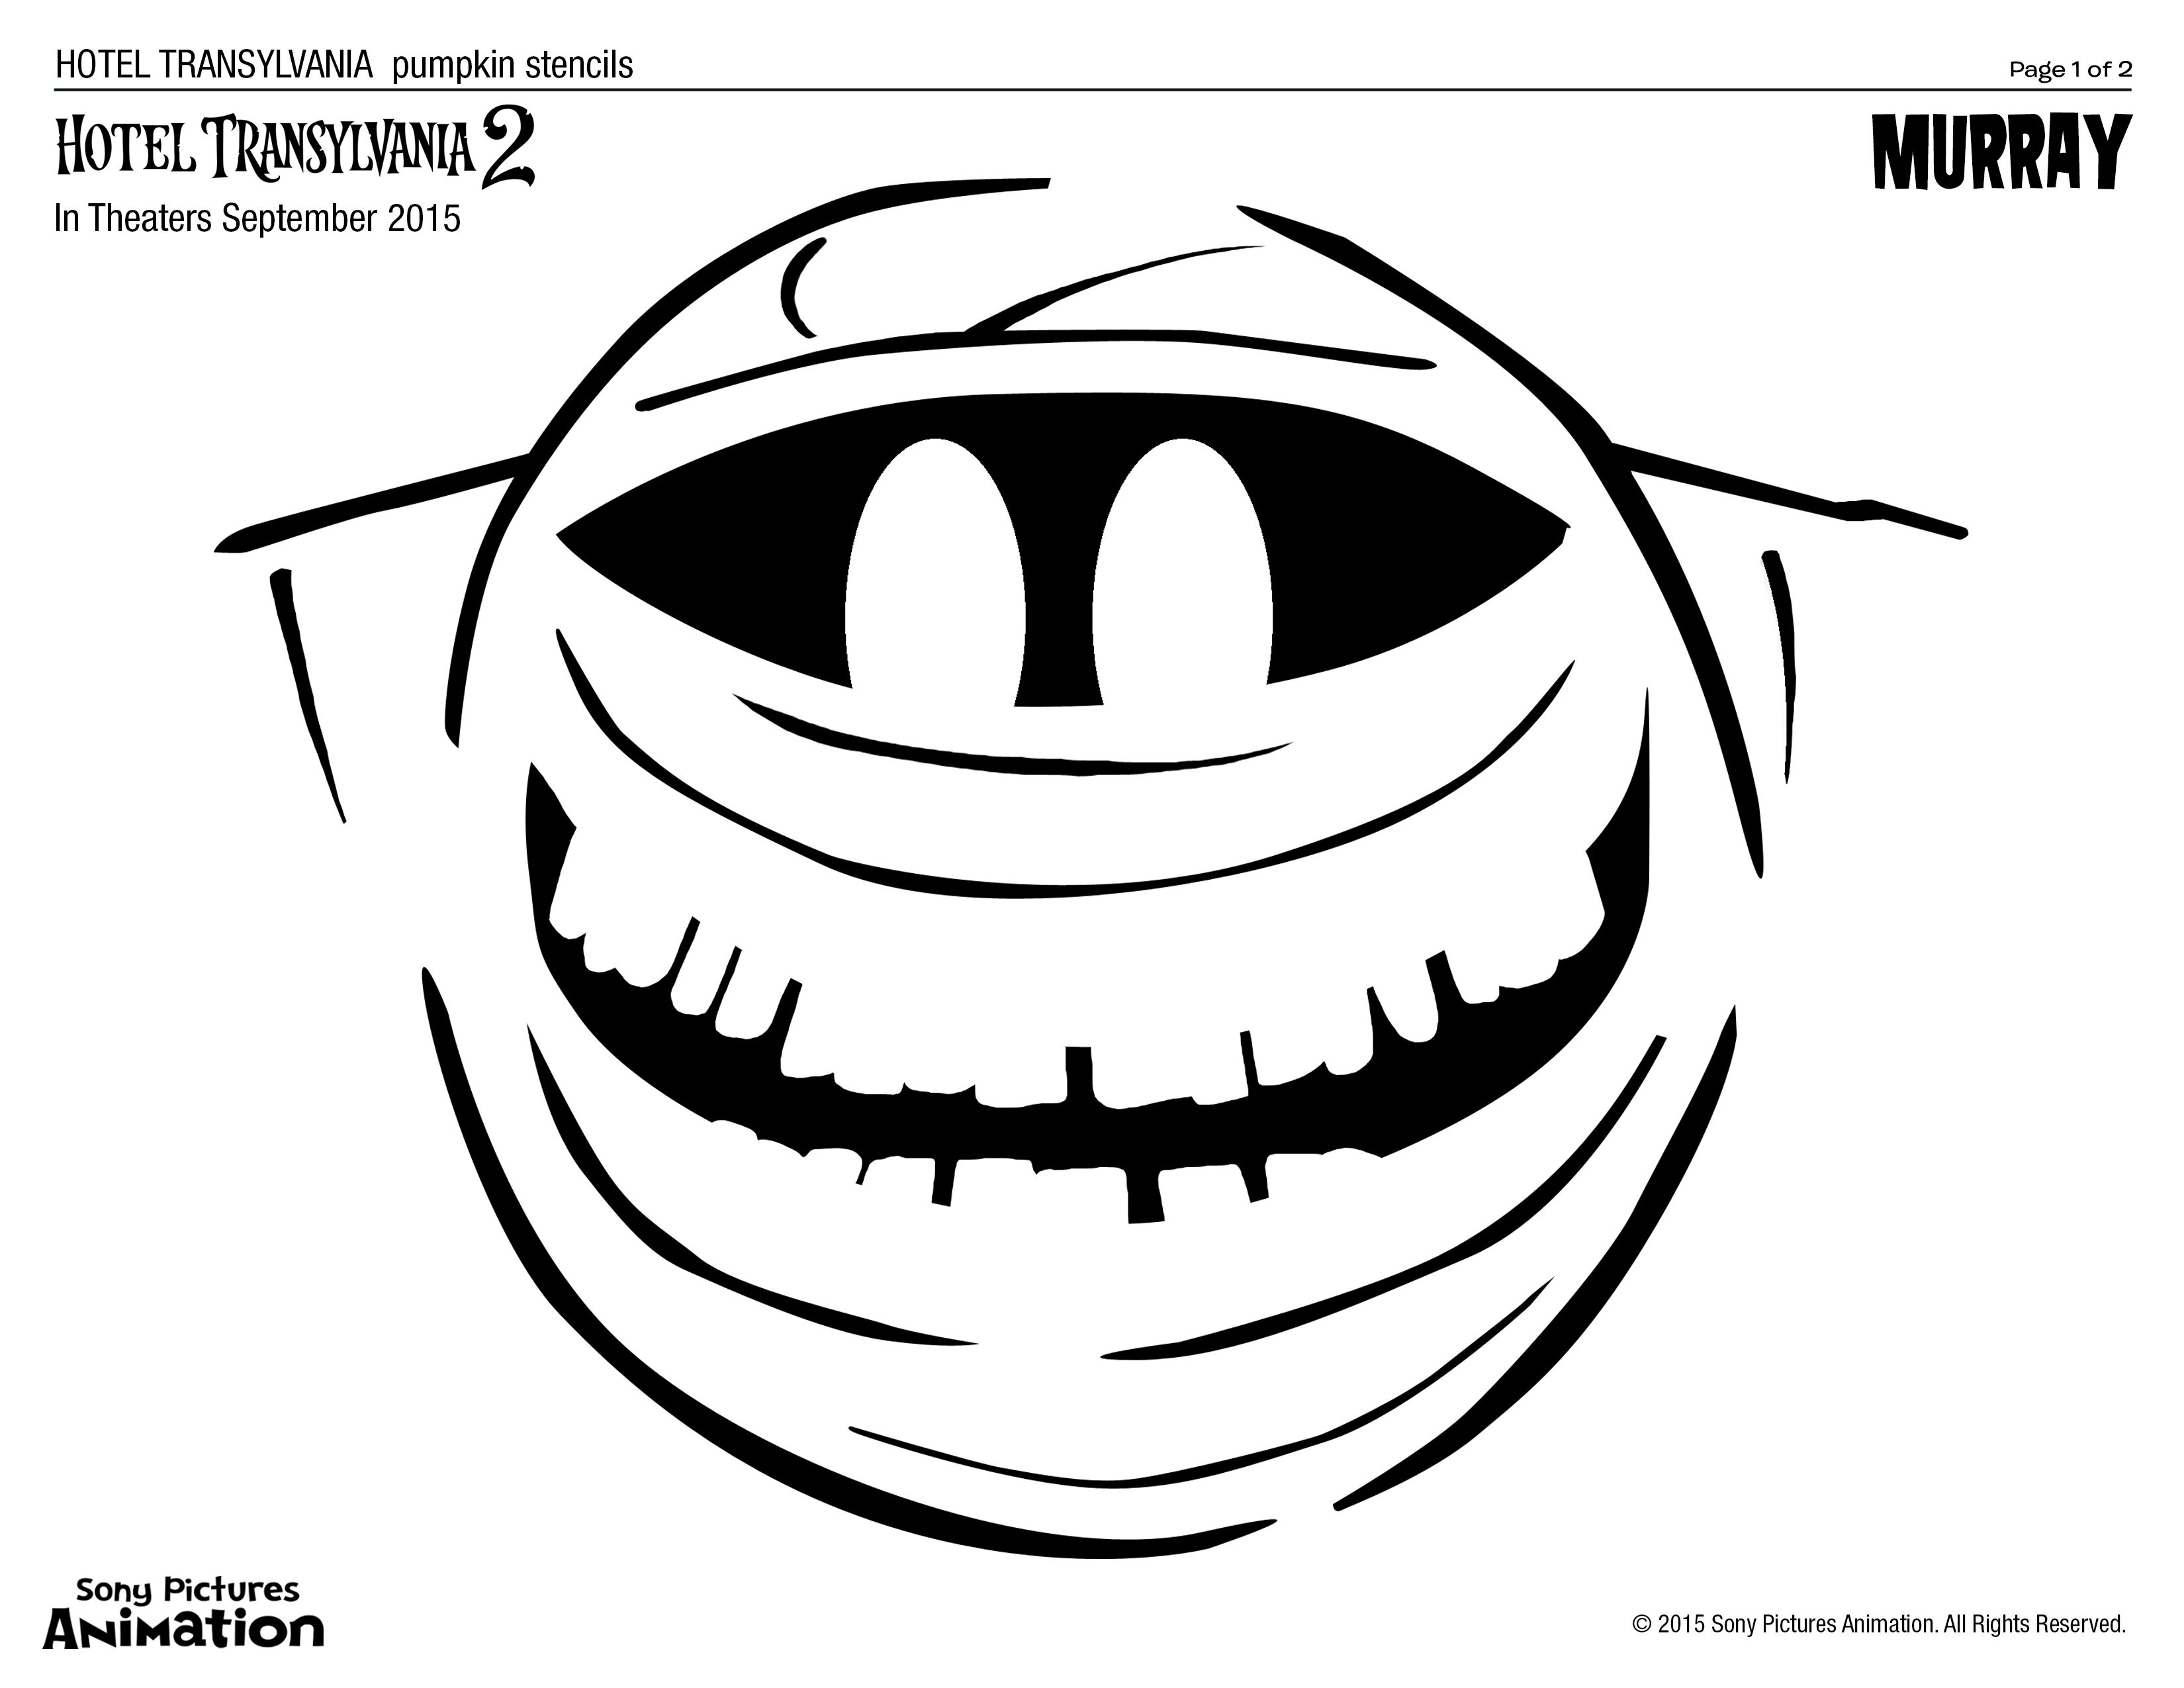 Ready Set Carve Download Pumpkin Stencils Of All Your Favorite Hotel Transylvania Characters